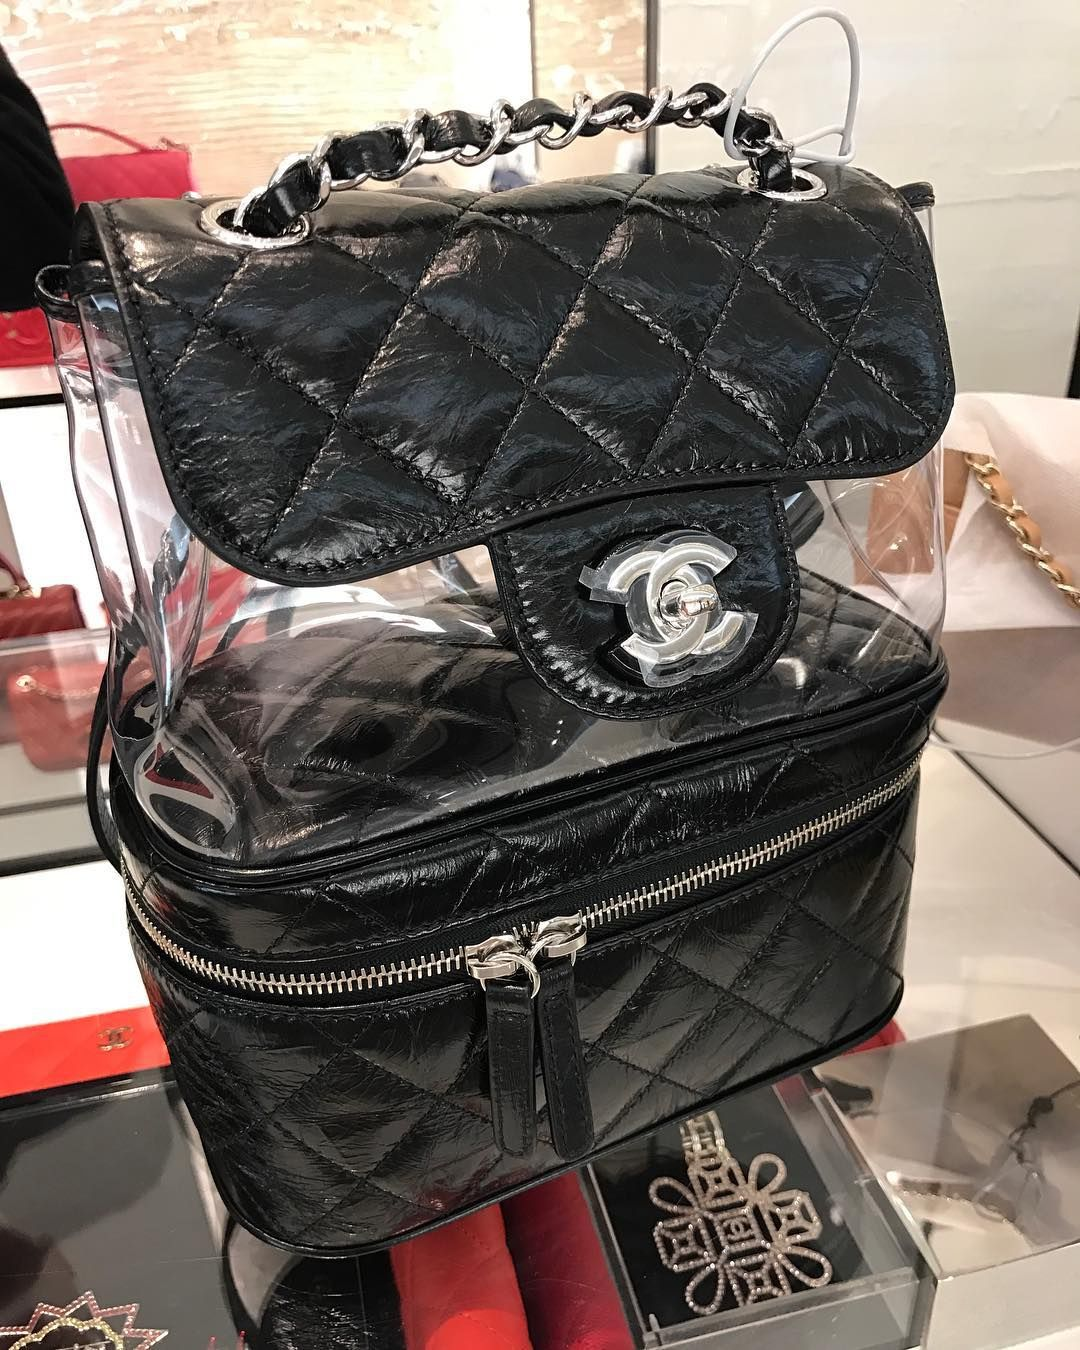 52845015d91ee3 Chanel Transparent Vanity Flap Backpack | Chanel | Chanel backpack ...